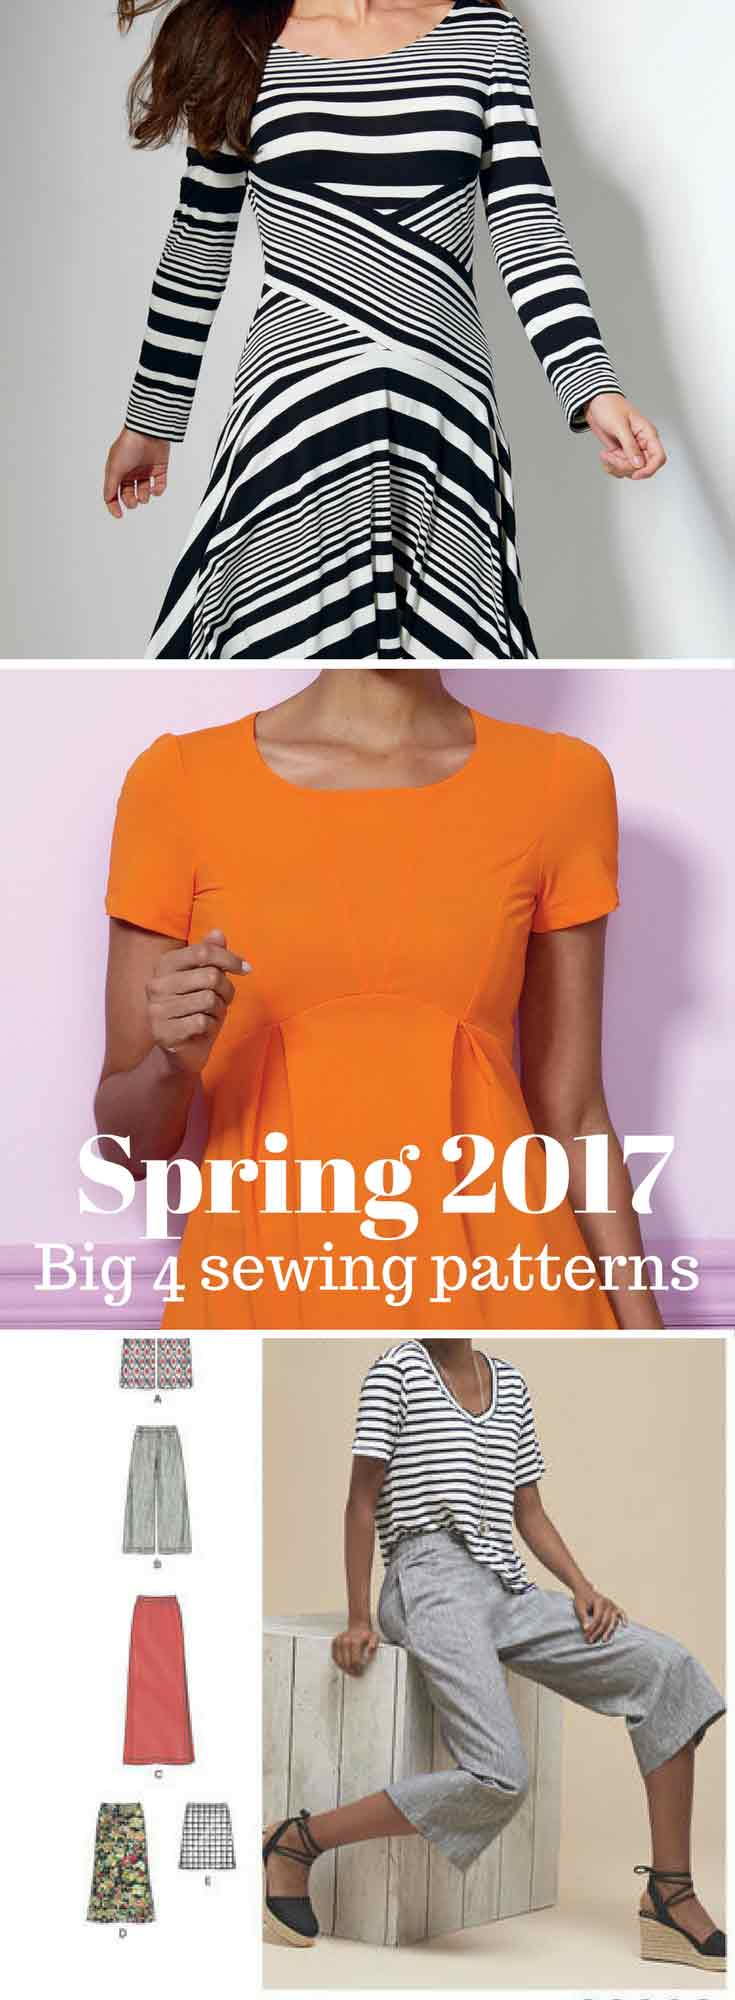 Big Four sewing patterns - spring 2017 - Butterick B6458, McCalls M7538, Simplicity 8299